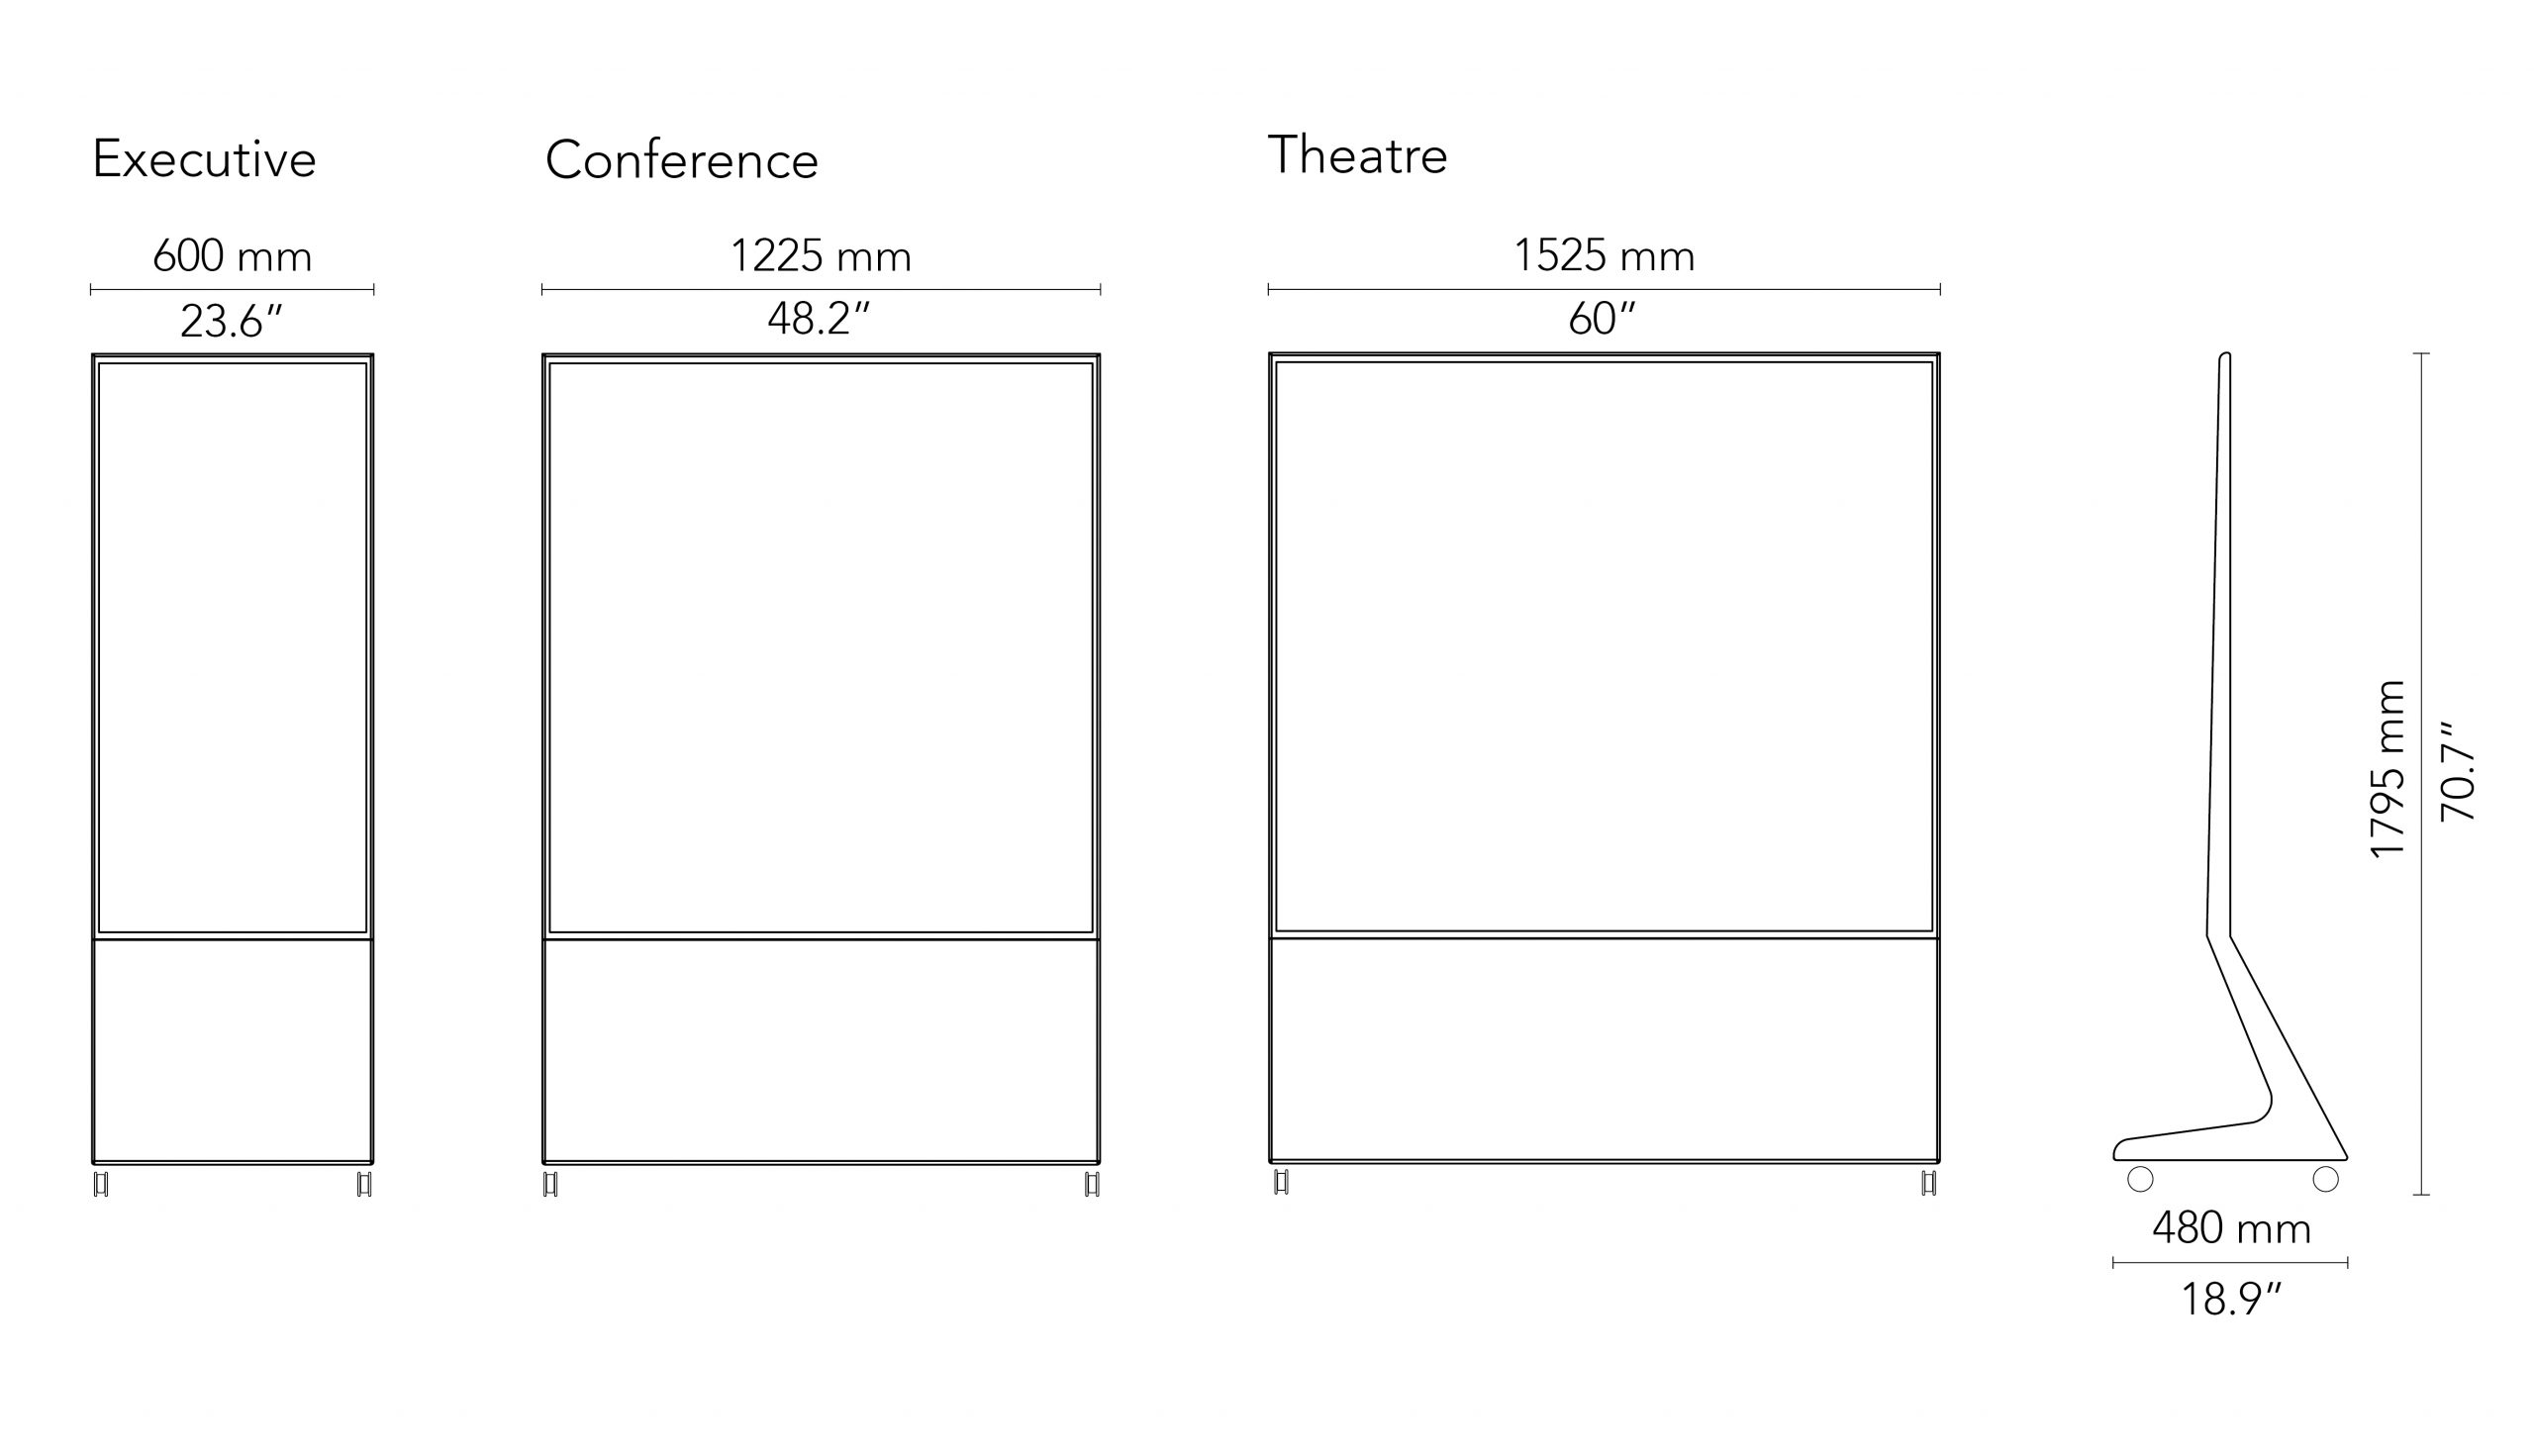 CHAT BOARD Mobile drawings with measurements in mm